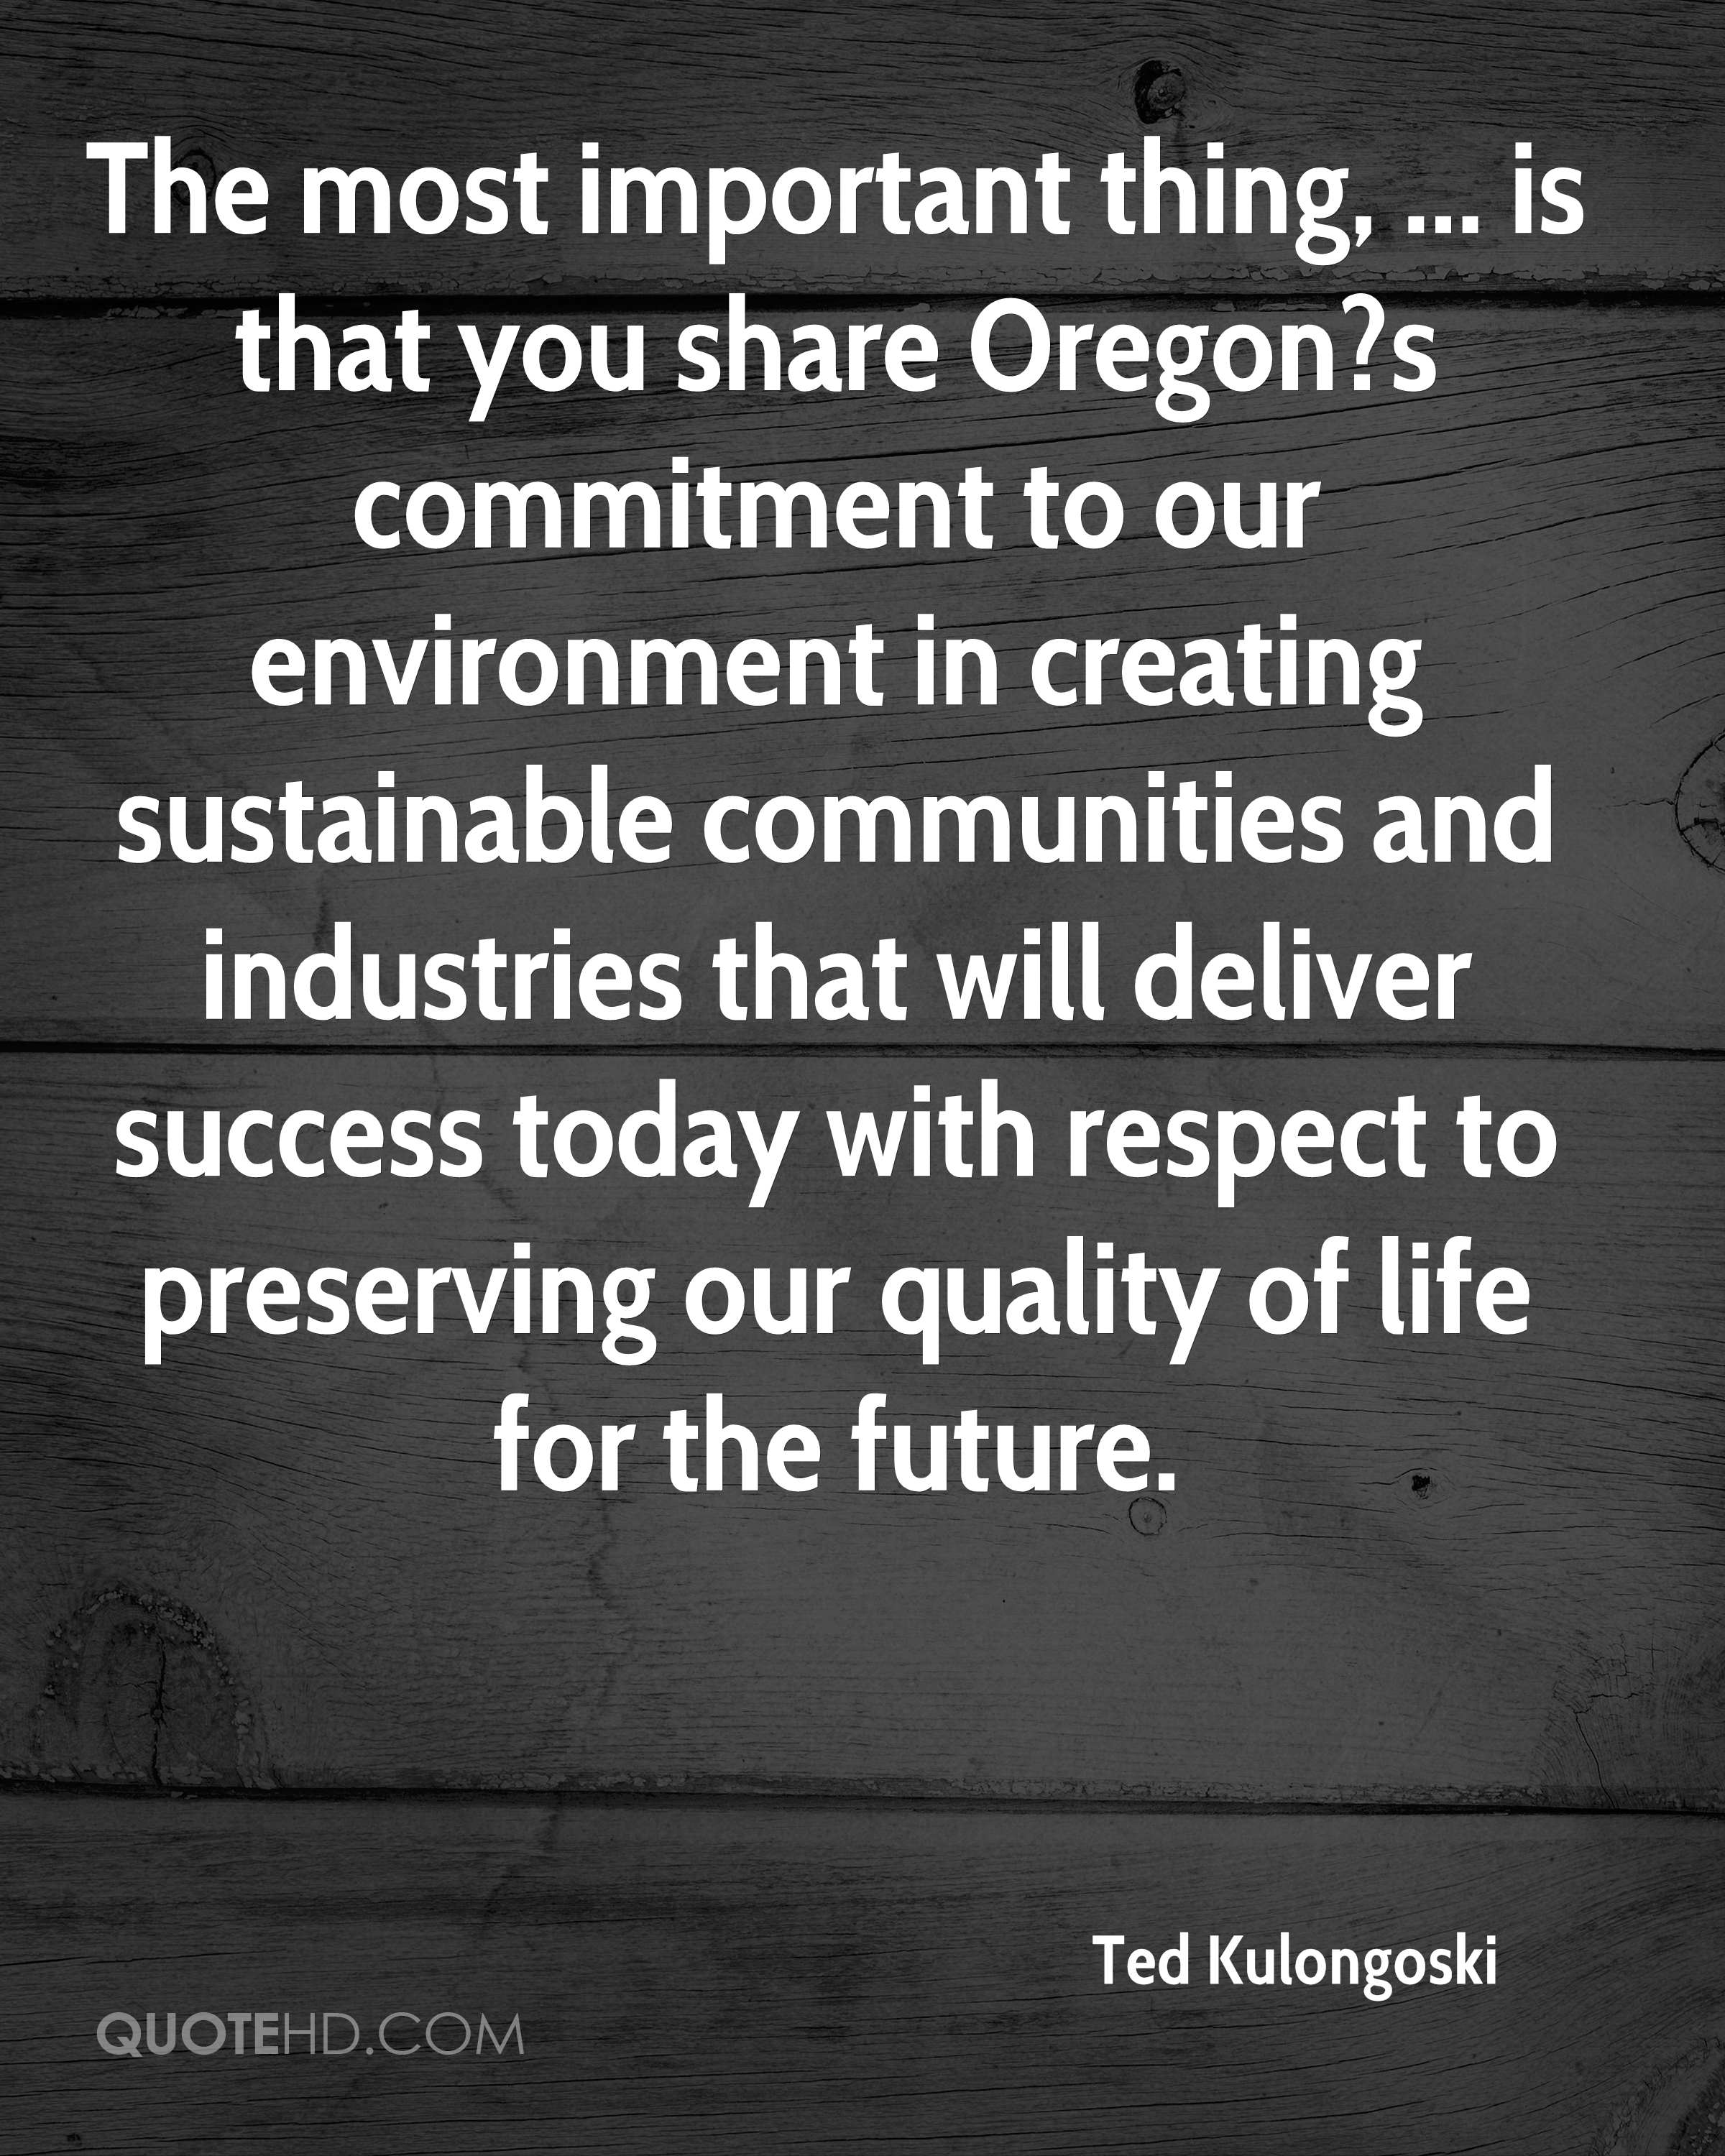 The most important thing, ... is that you share Oregon?s commitment to our environment in creating sustainable communities and industries that will deliver success today with respect to preserving our quality of life for the future.